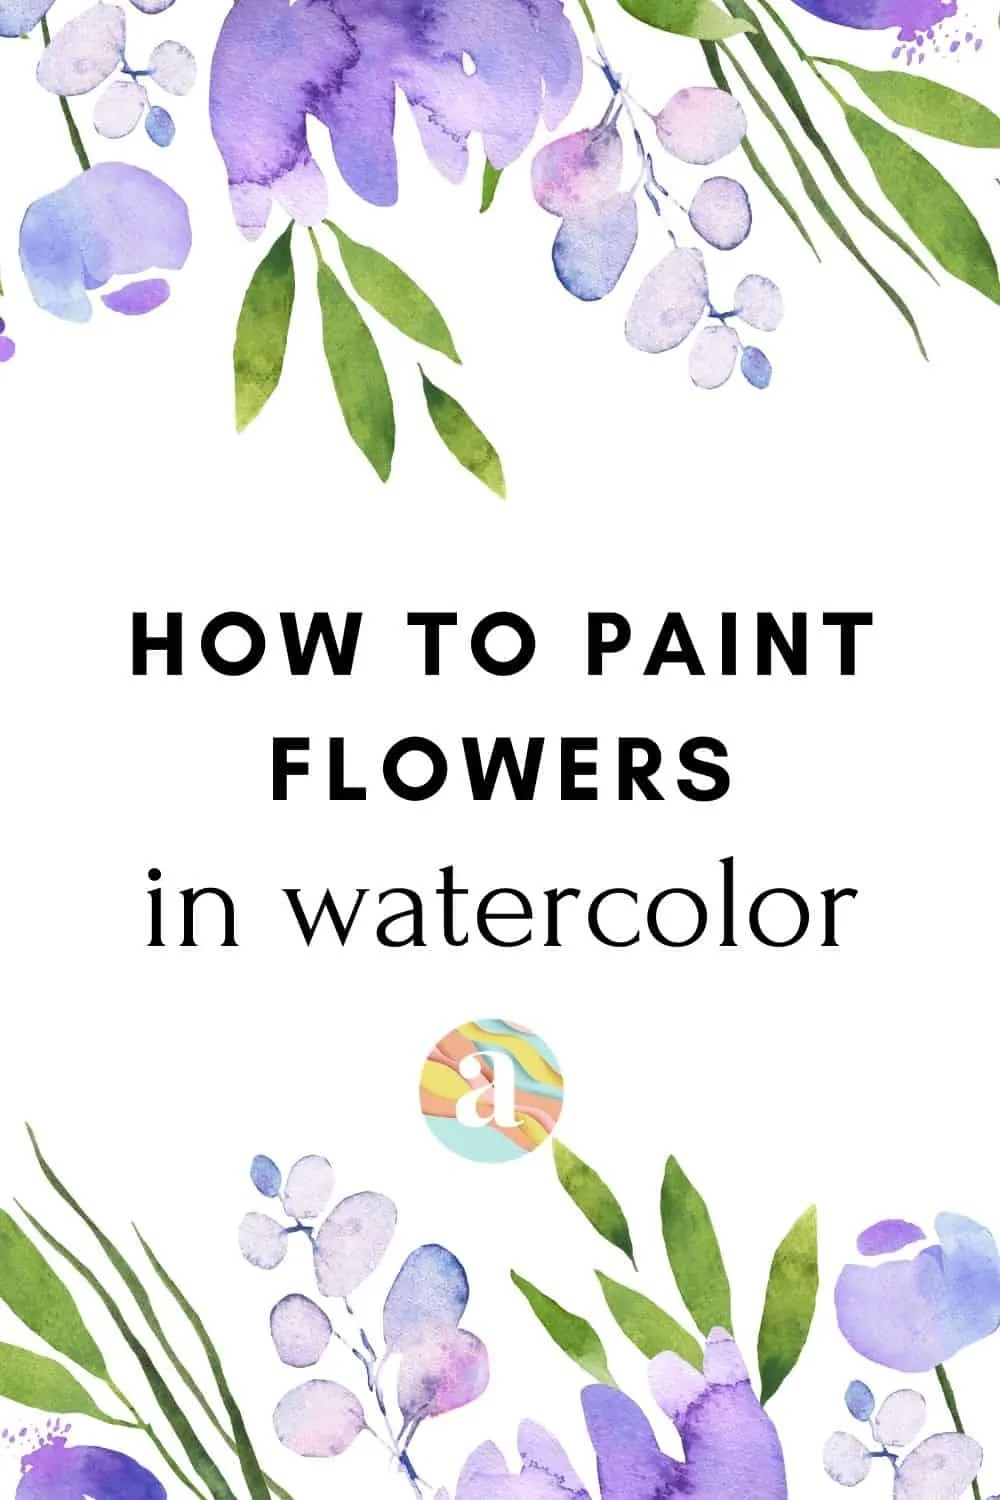 10 Ideas for Your Next Watercolor Painting 23